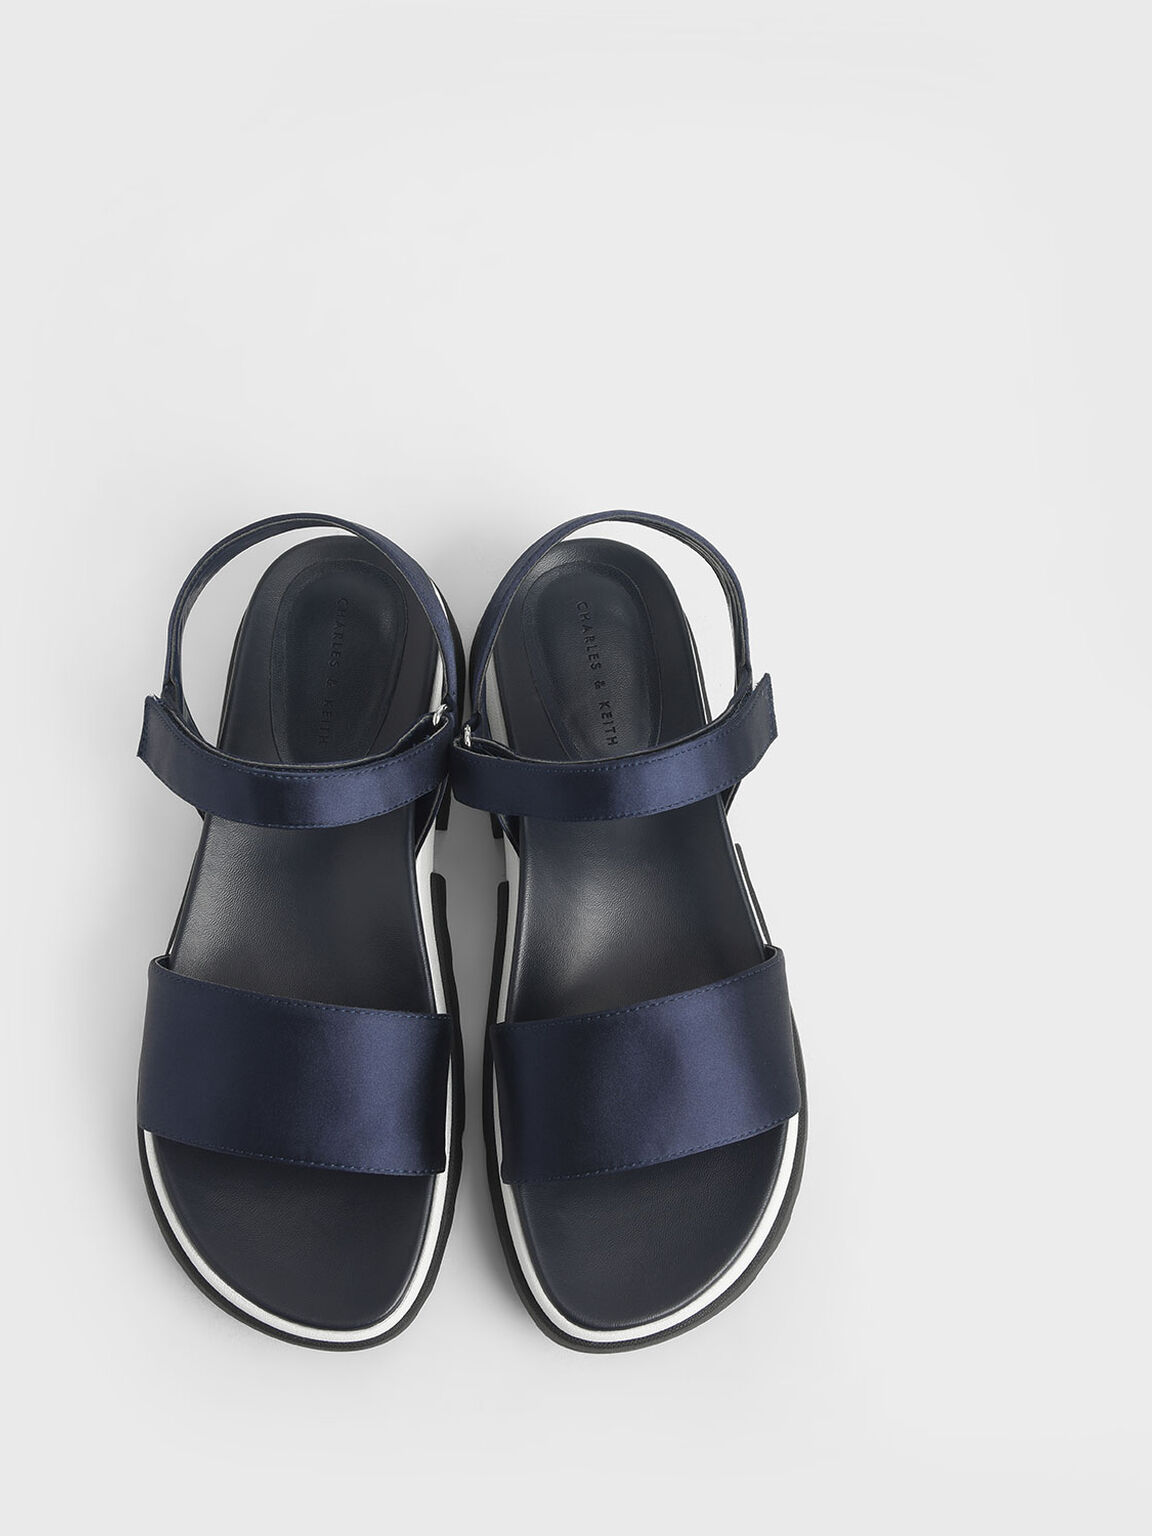 Satin Chunky Sole Sandals, Dark Blue, hi-res